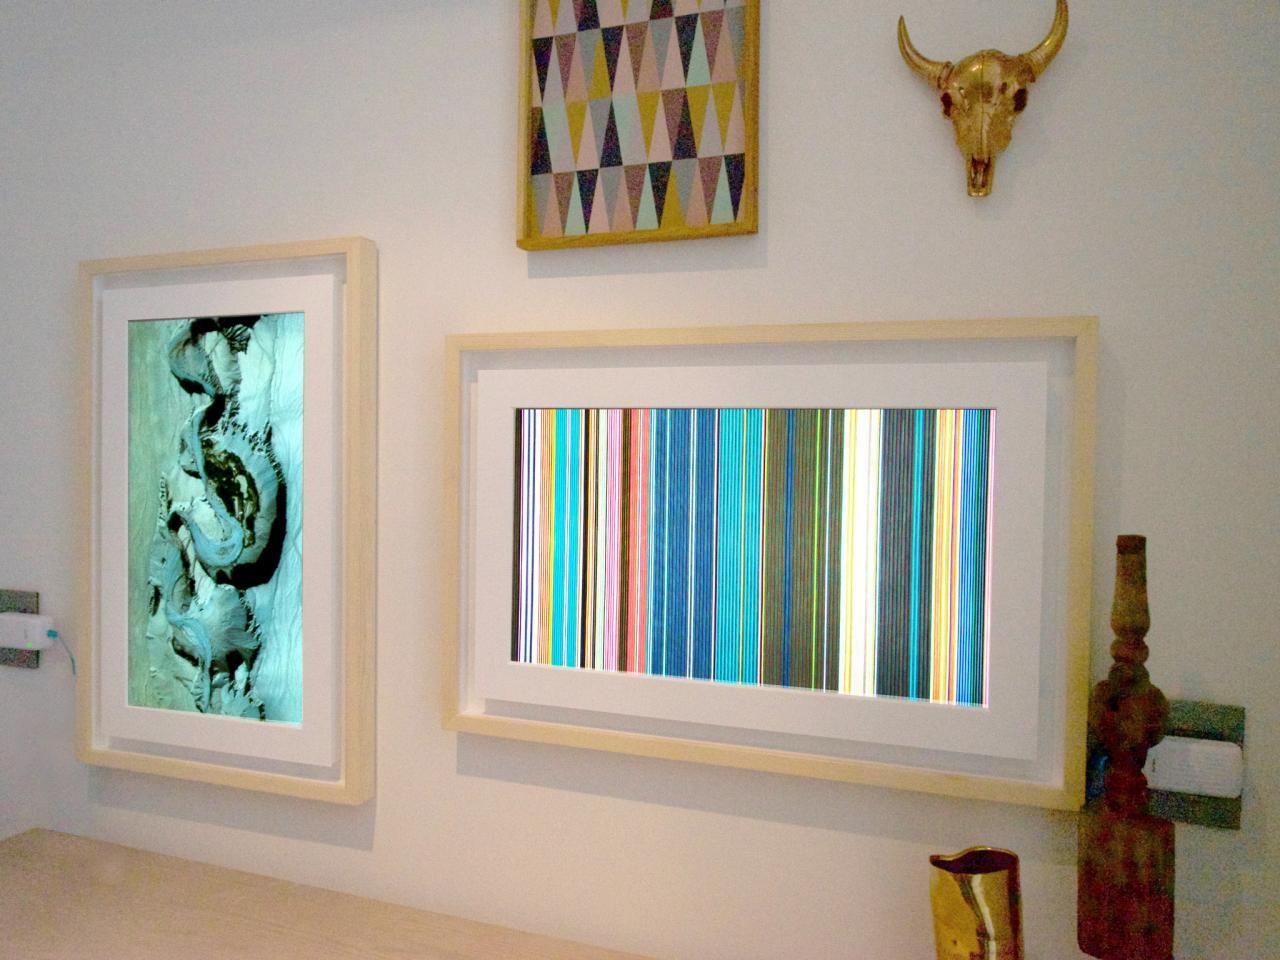 Digital Picture Frames Have Grown Up Into Wall Art   Hgtv Smart With Regard To Wall Art Frames (Image 9 of 20)